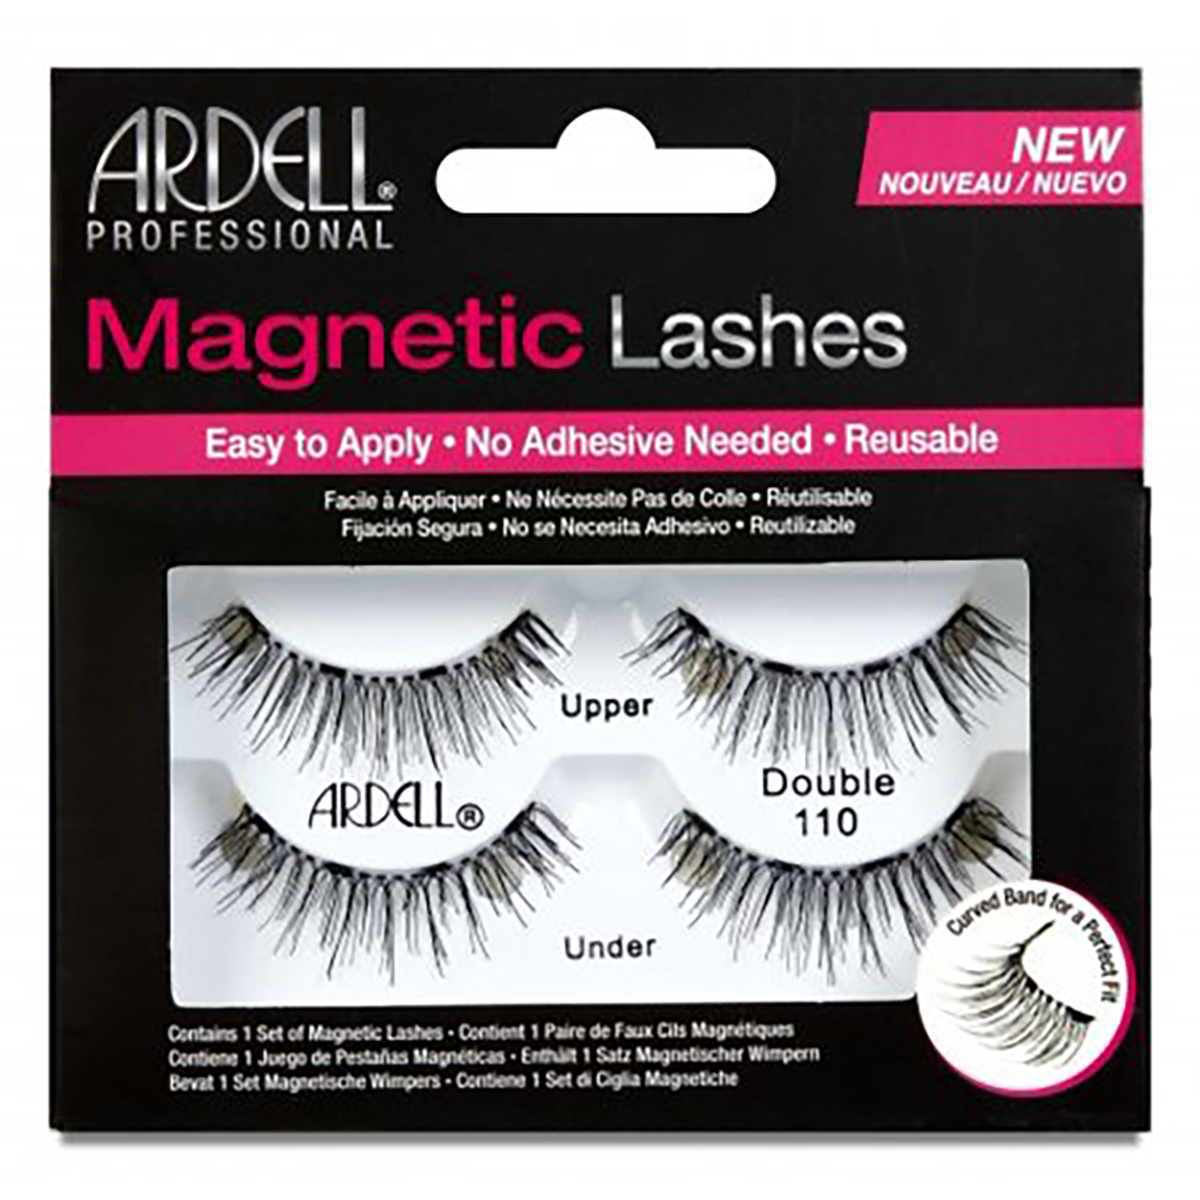 ardell brand magnetic lashes